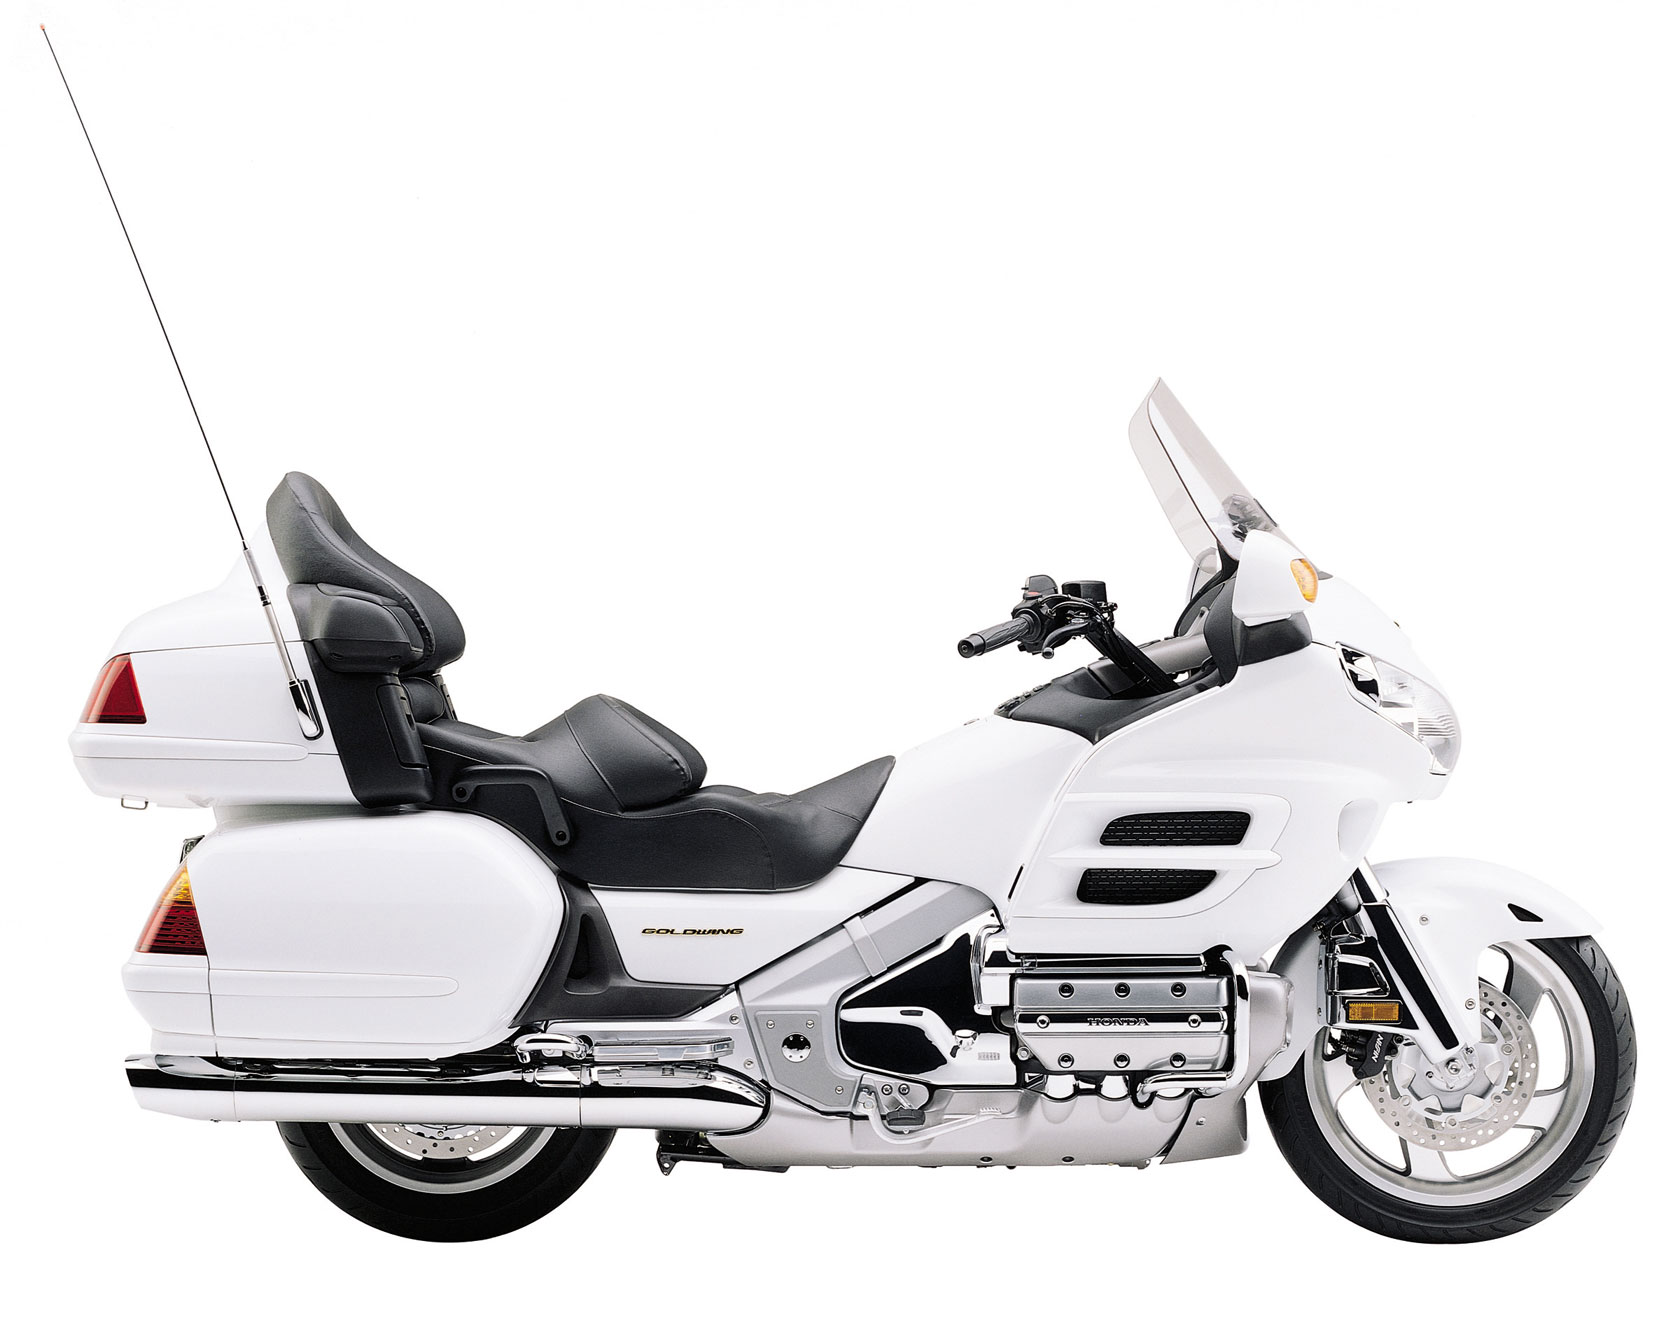 Honda GL 1800 Gold Wing 2004 images #82724